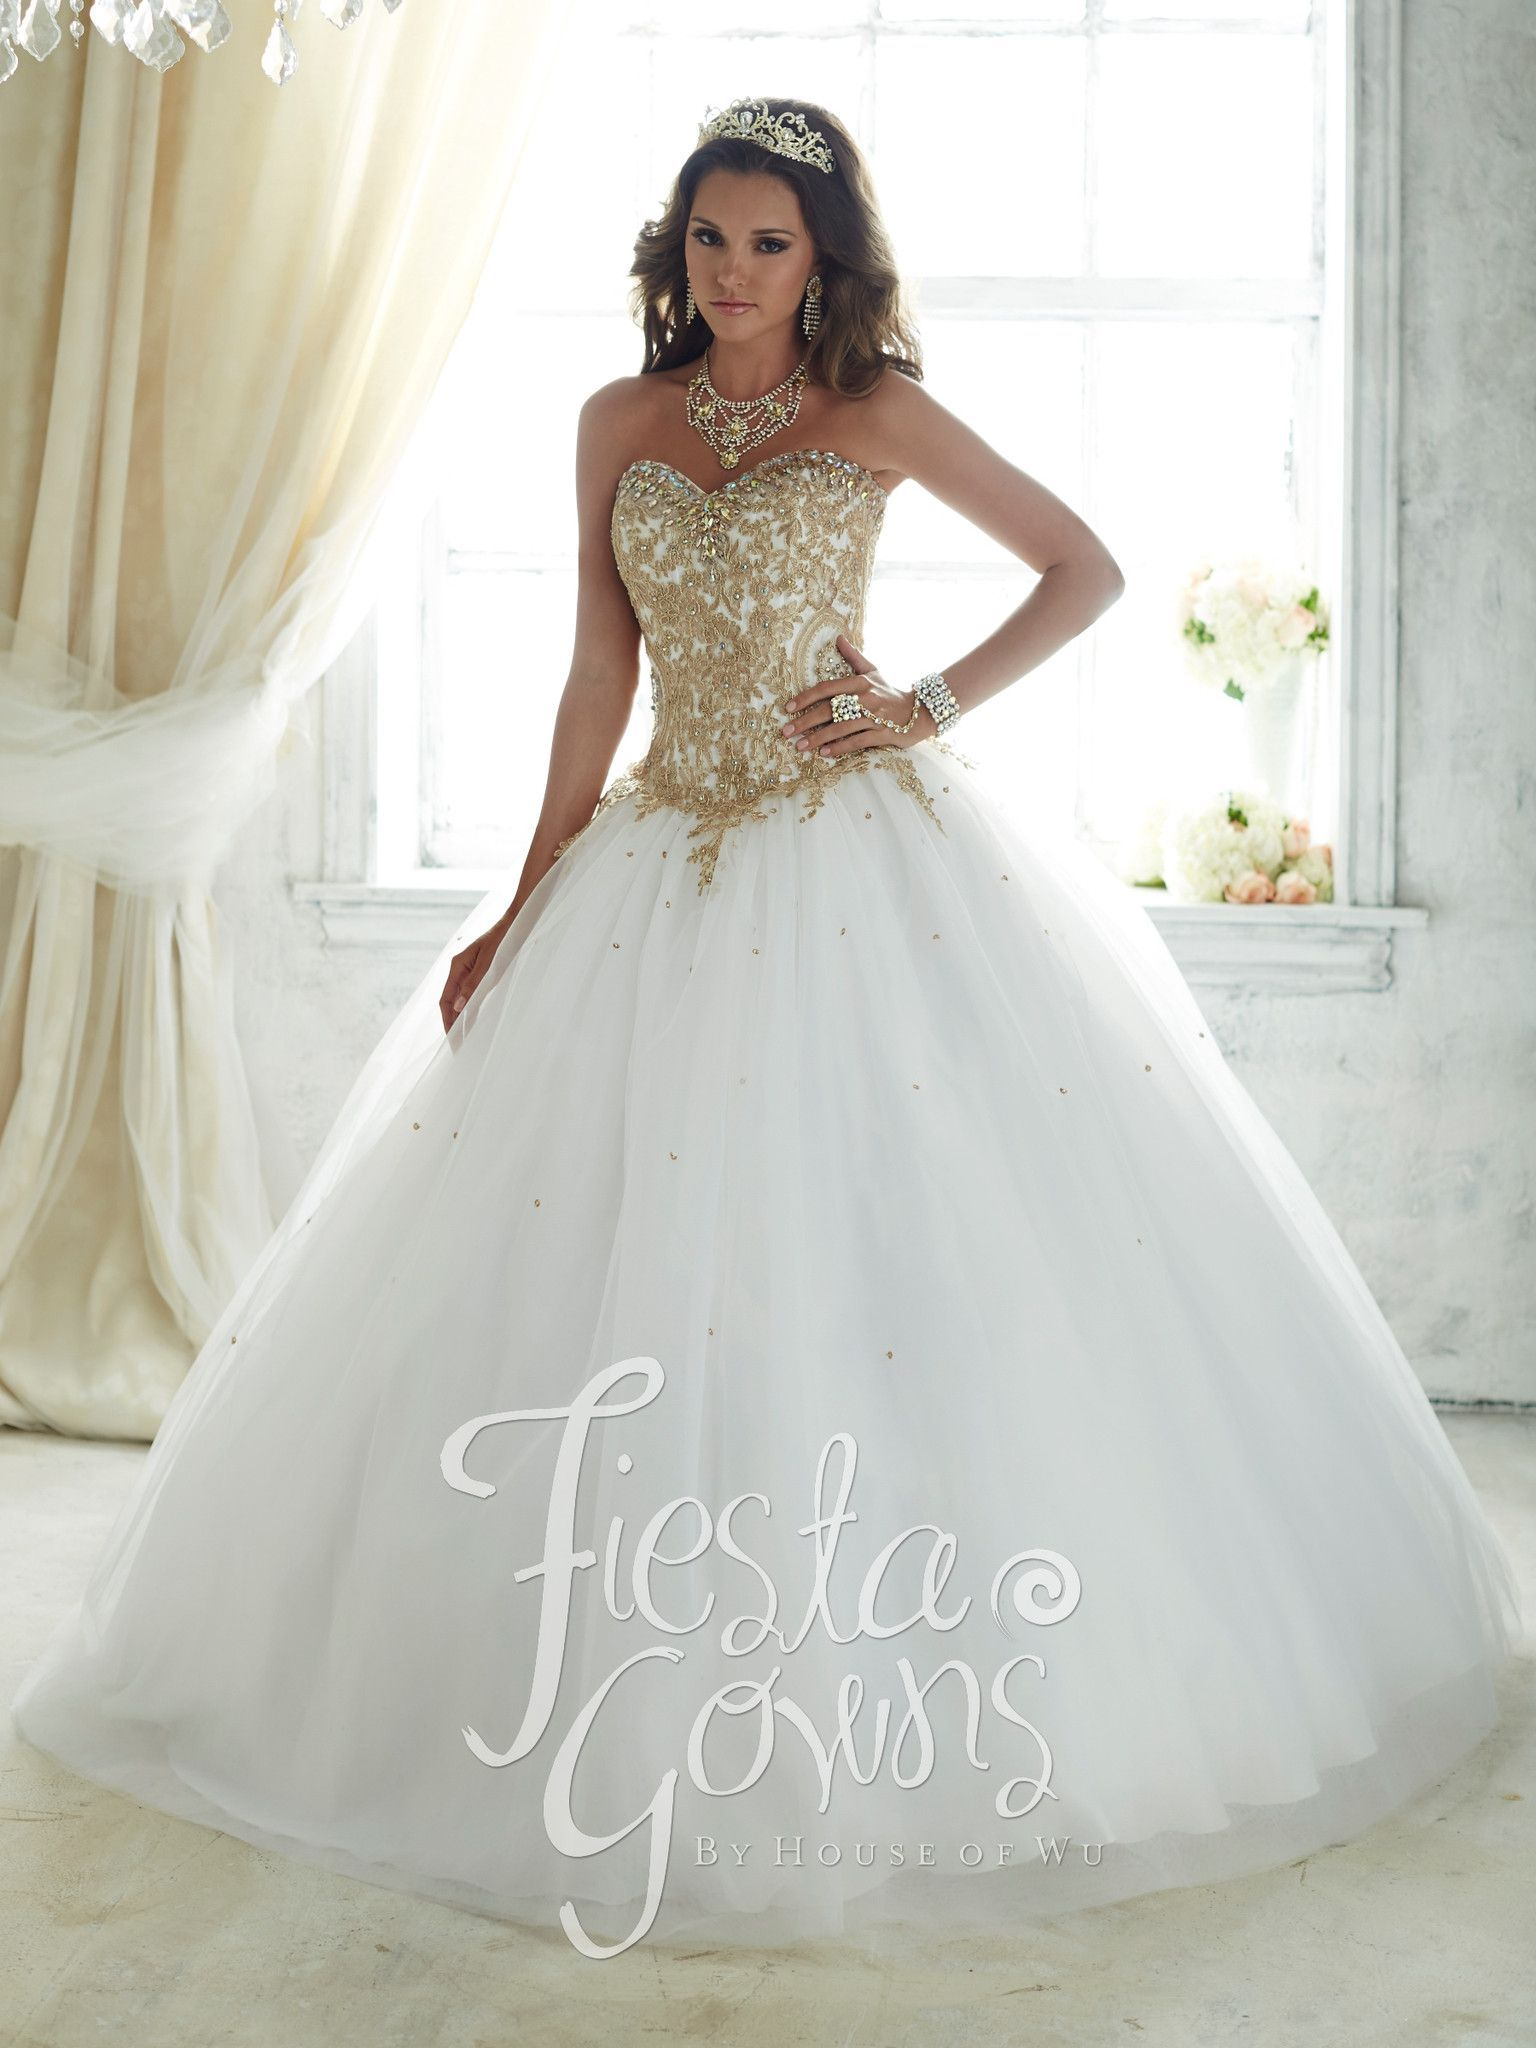 48ab3532bf Gold Beaded Strapless Dress by House of Wu Fiesta Gowns Style 56286 ...